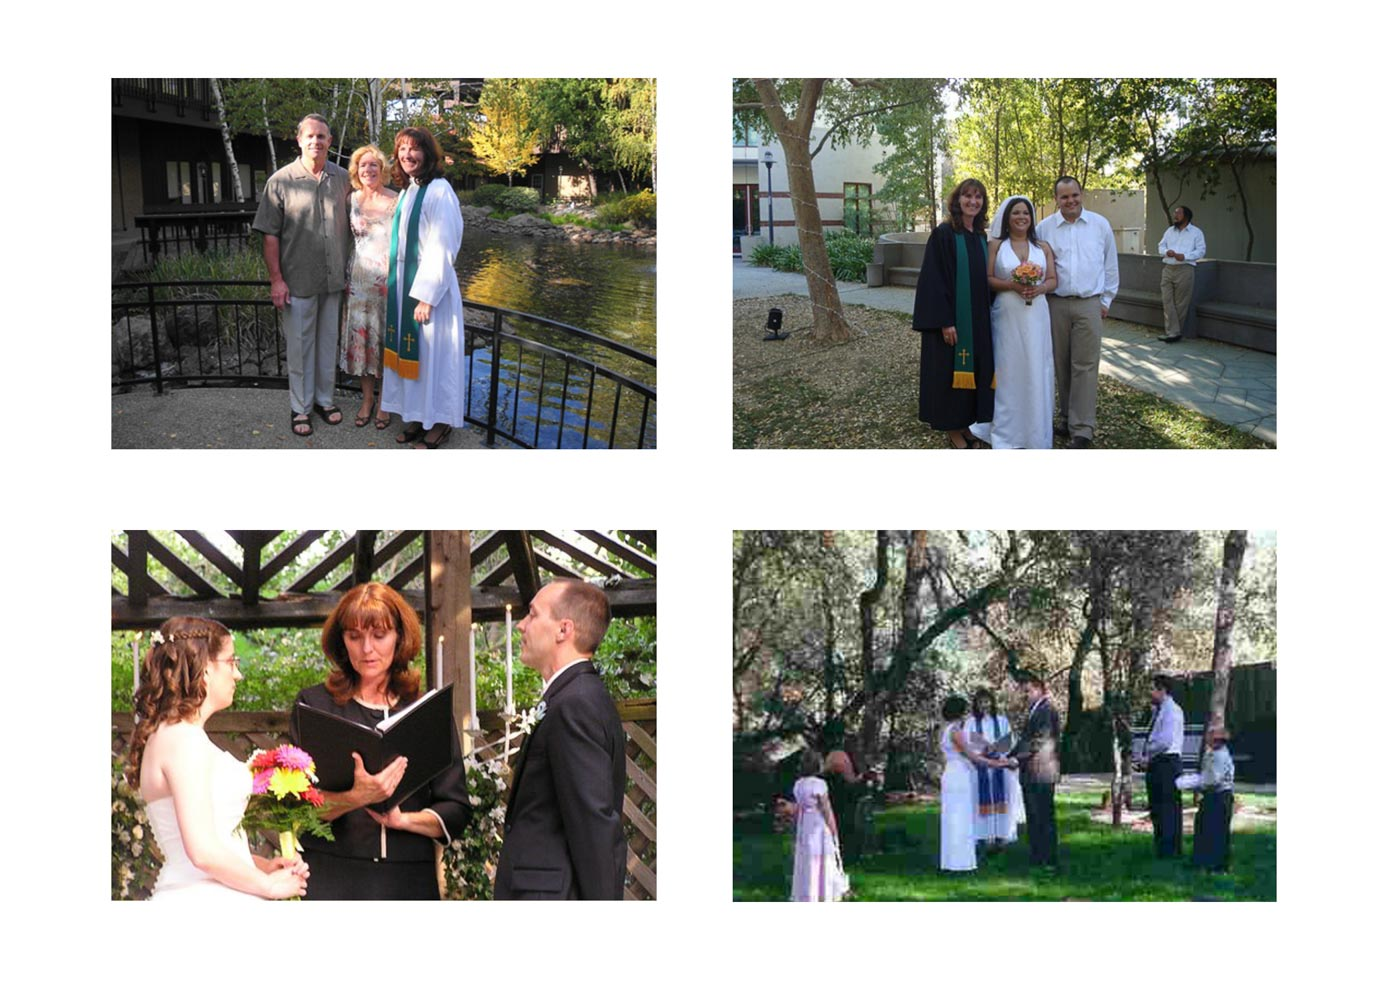 Four-photo collage of wedding ceremonies